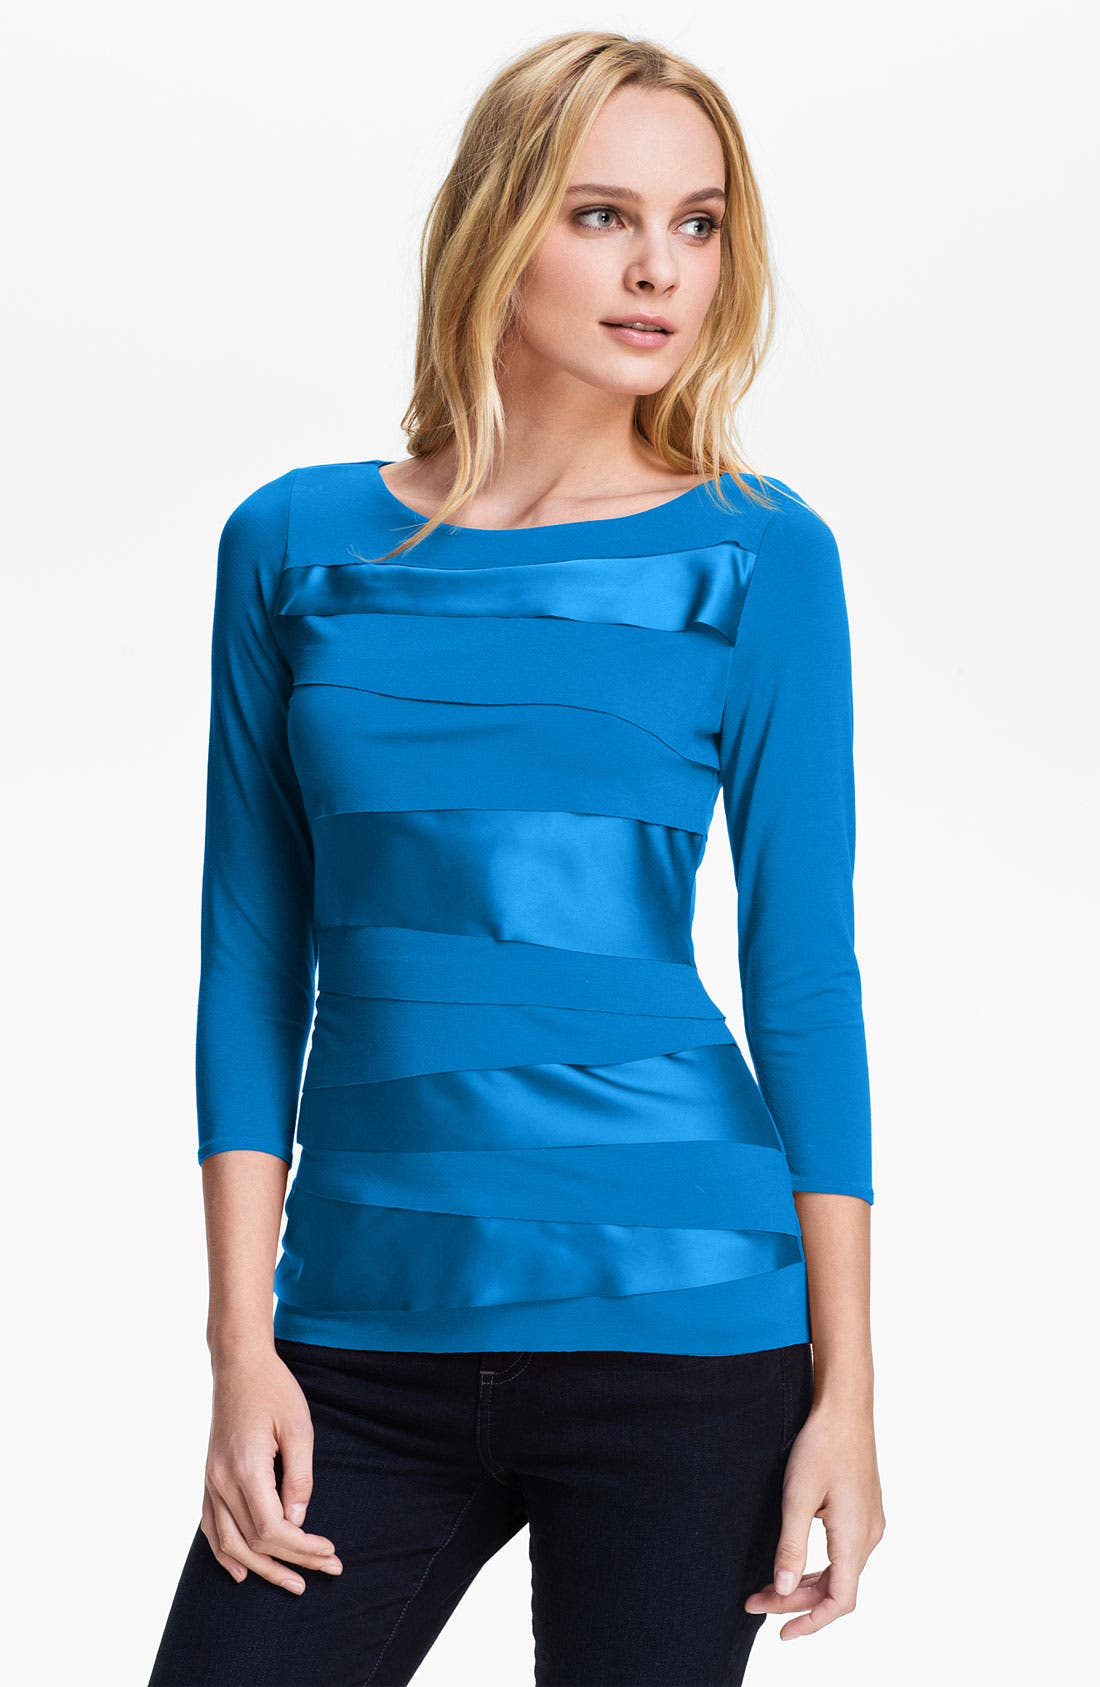 Alternate Image 1 Selected - Vince Camuto Mix Media Zigzag Top